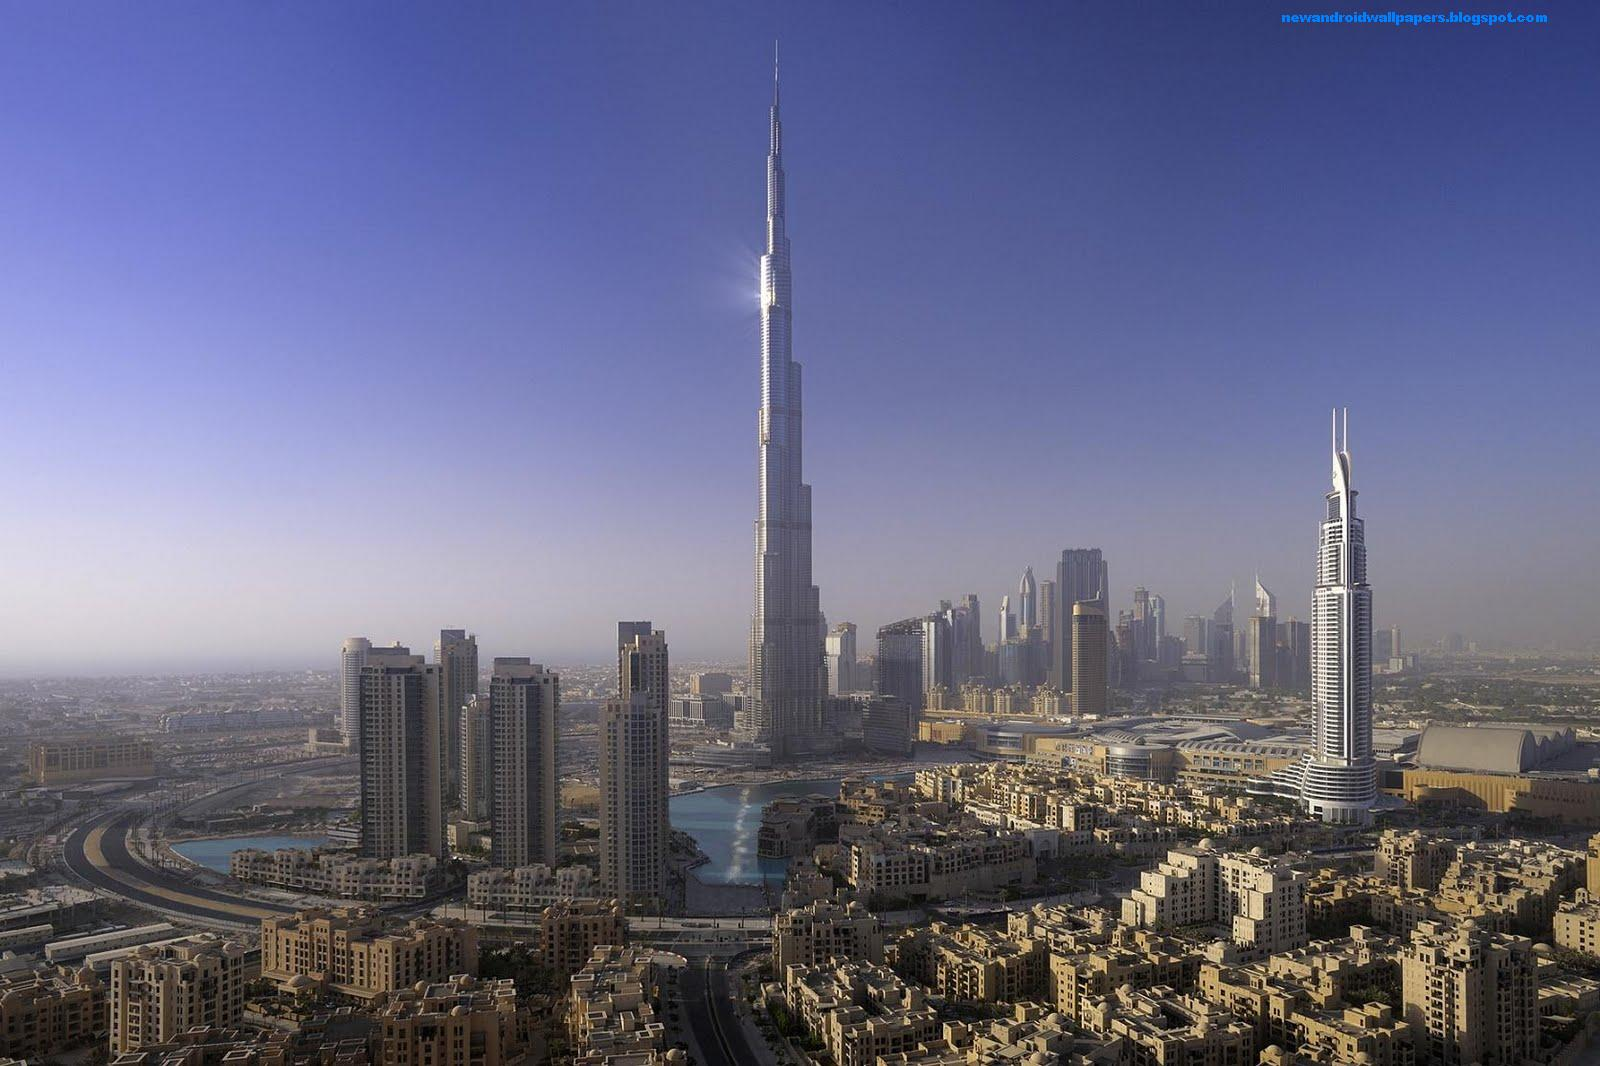 burj al khalifa wallpapers hd free download for android, mac